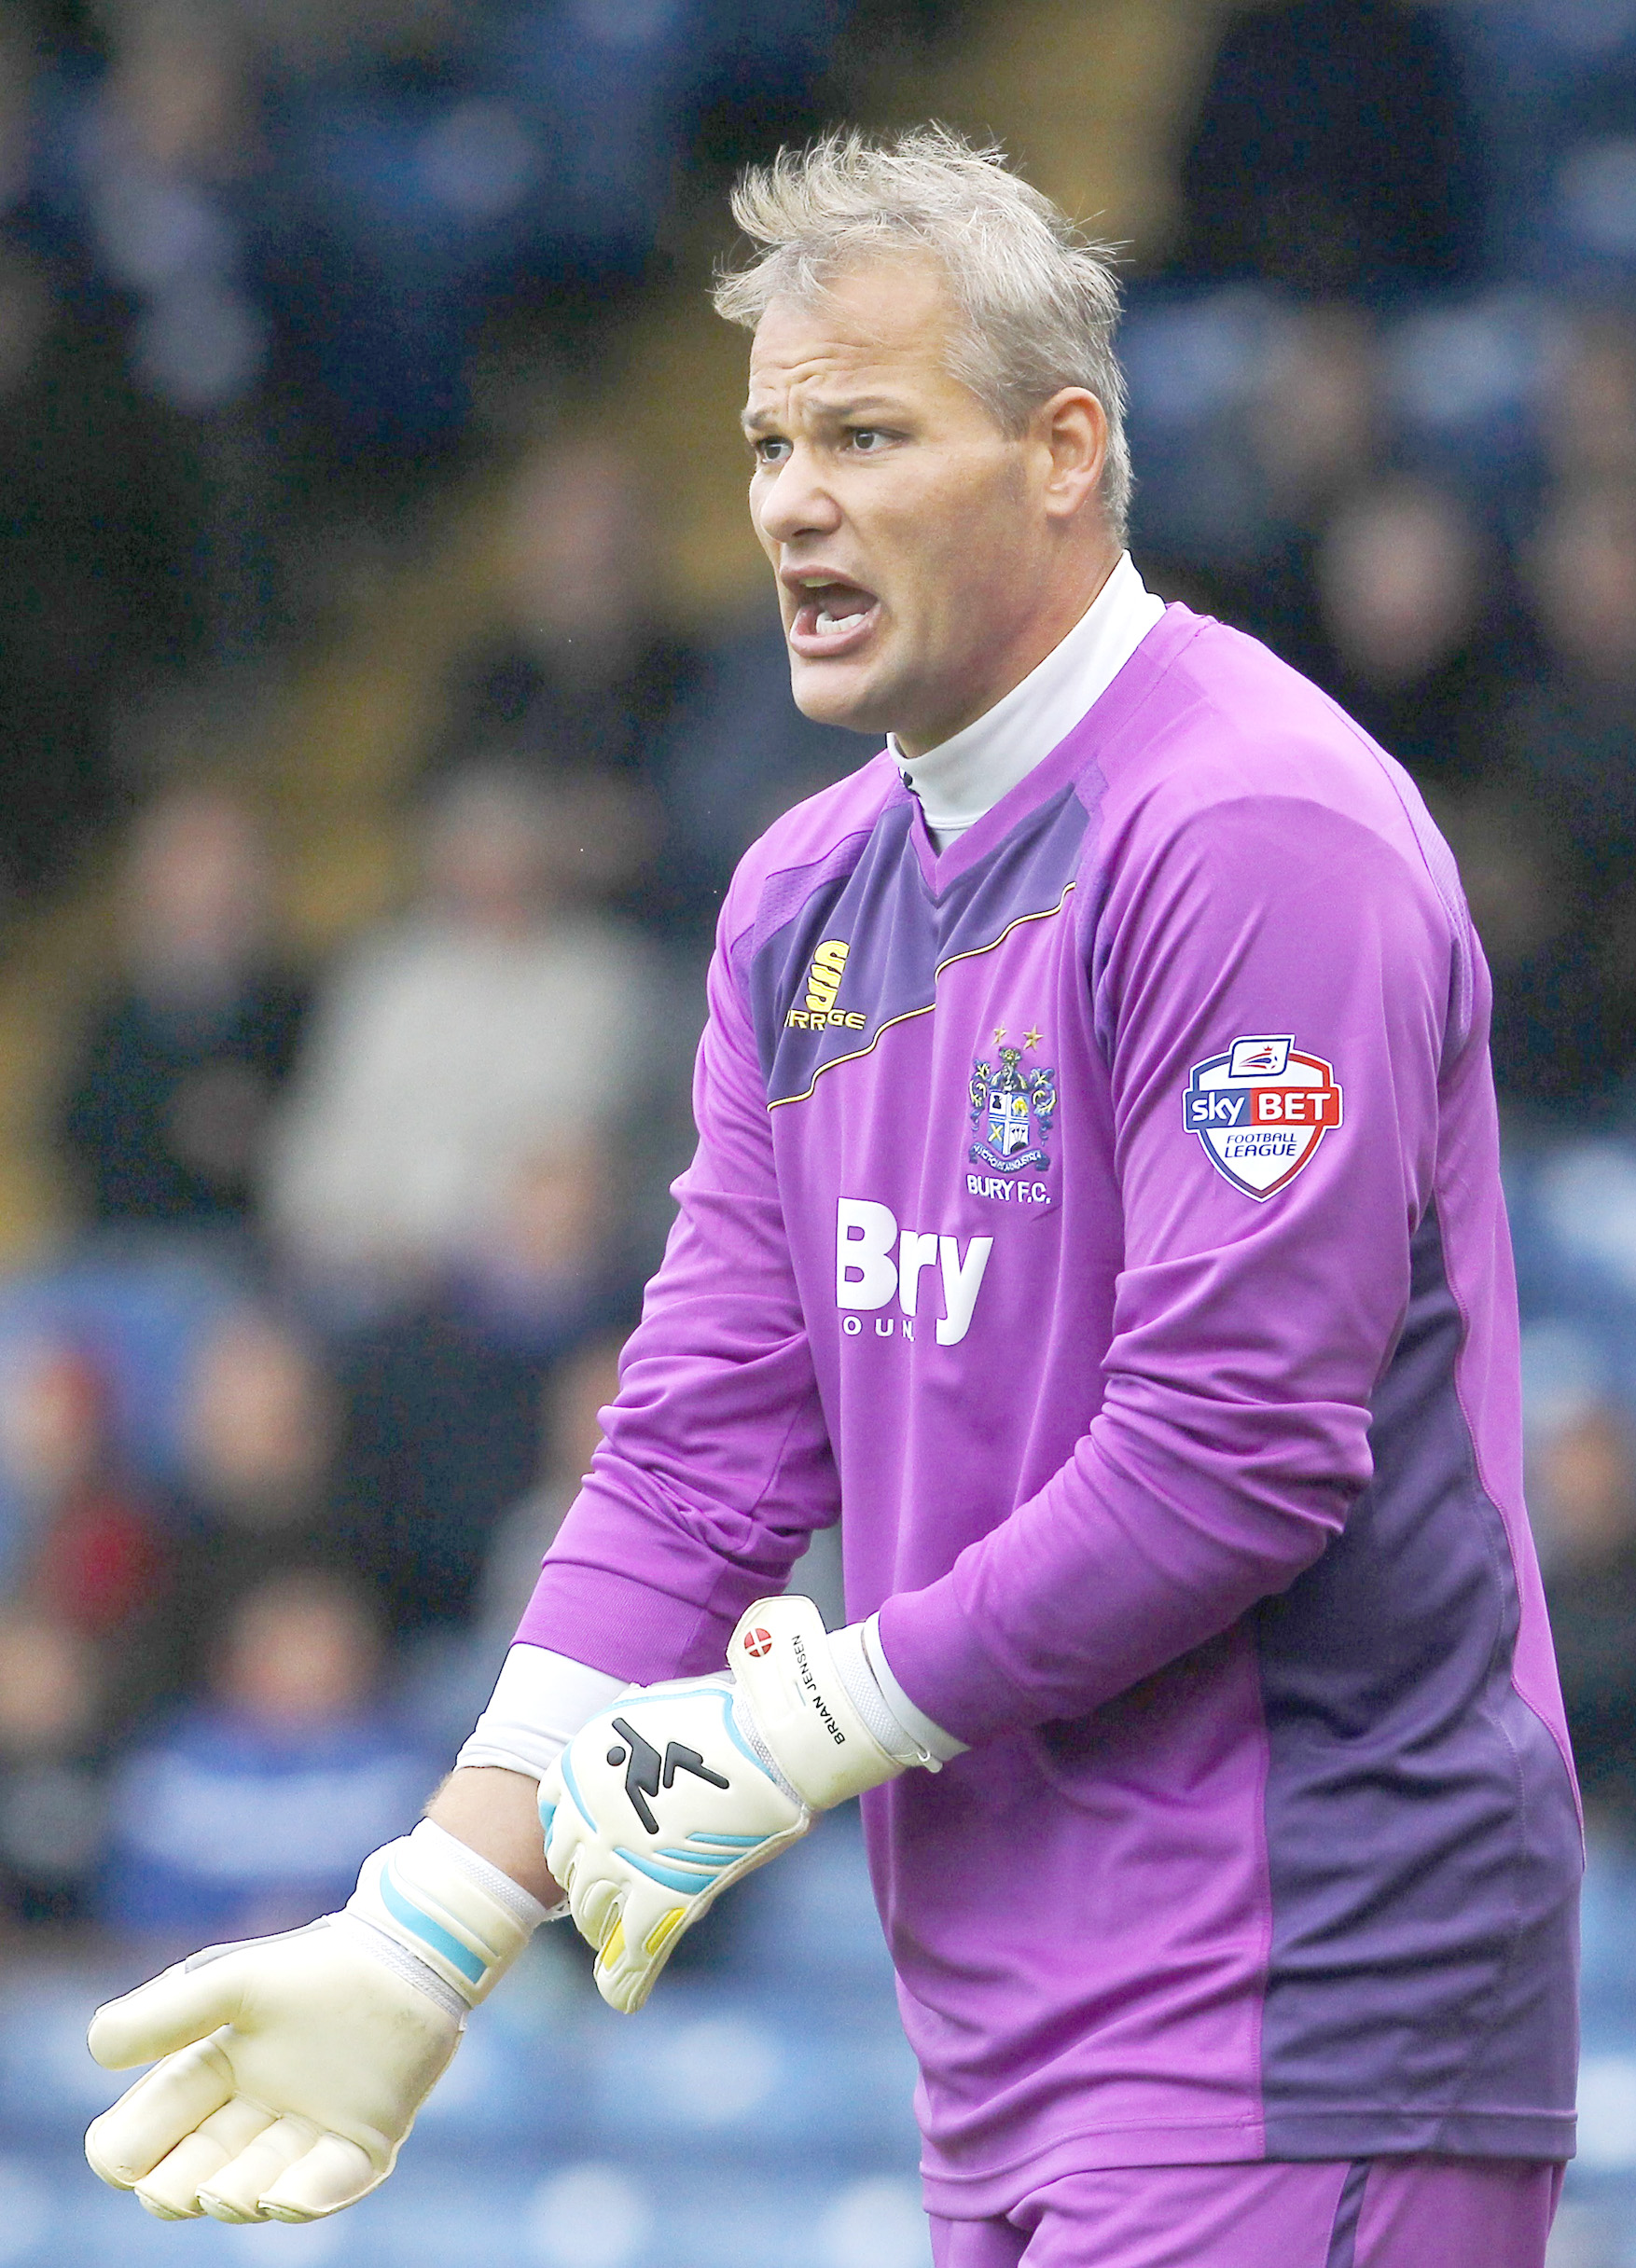 Brian Jensen playing for Bury last season